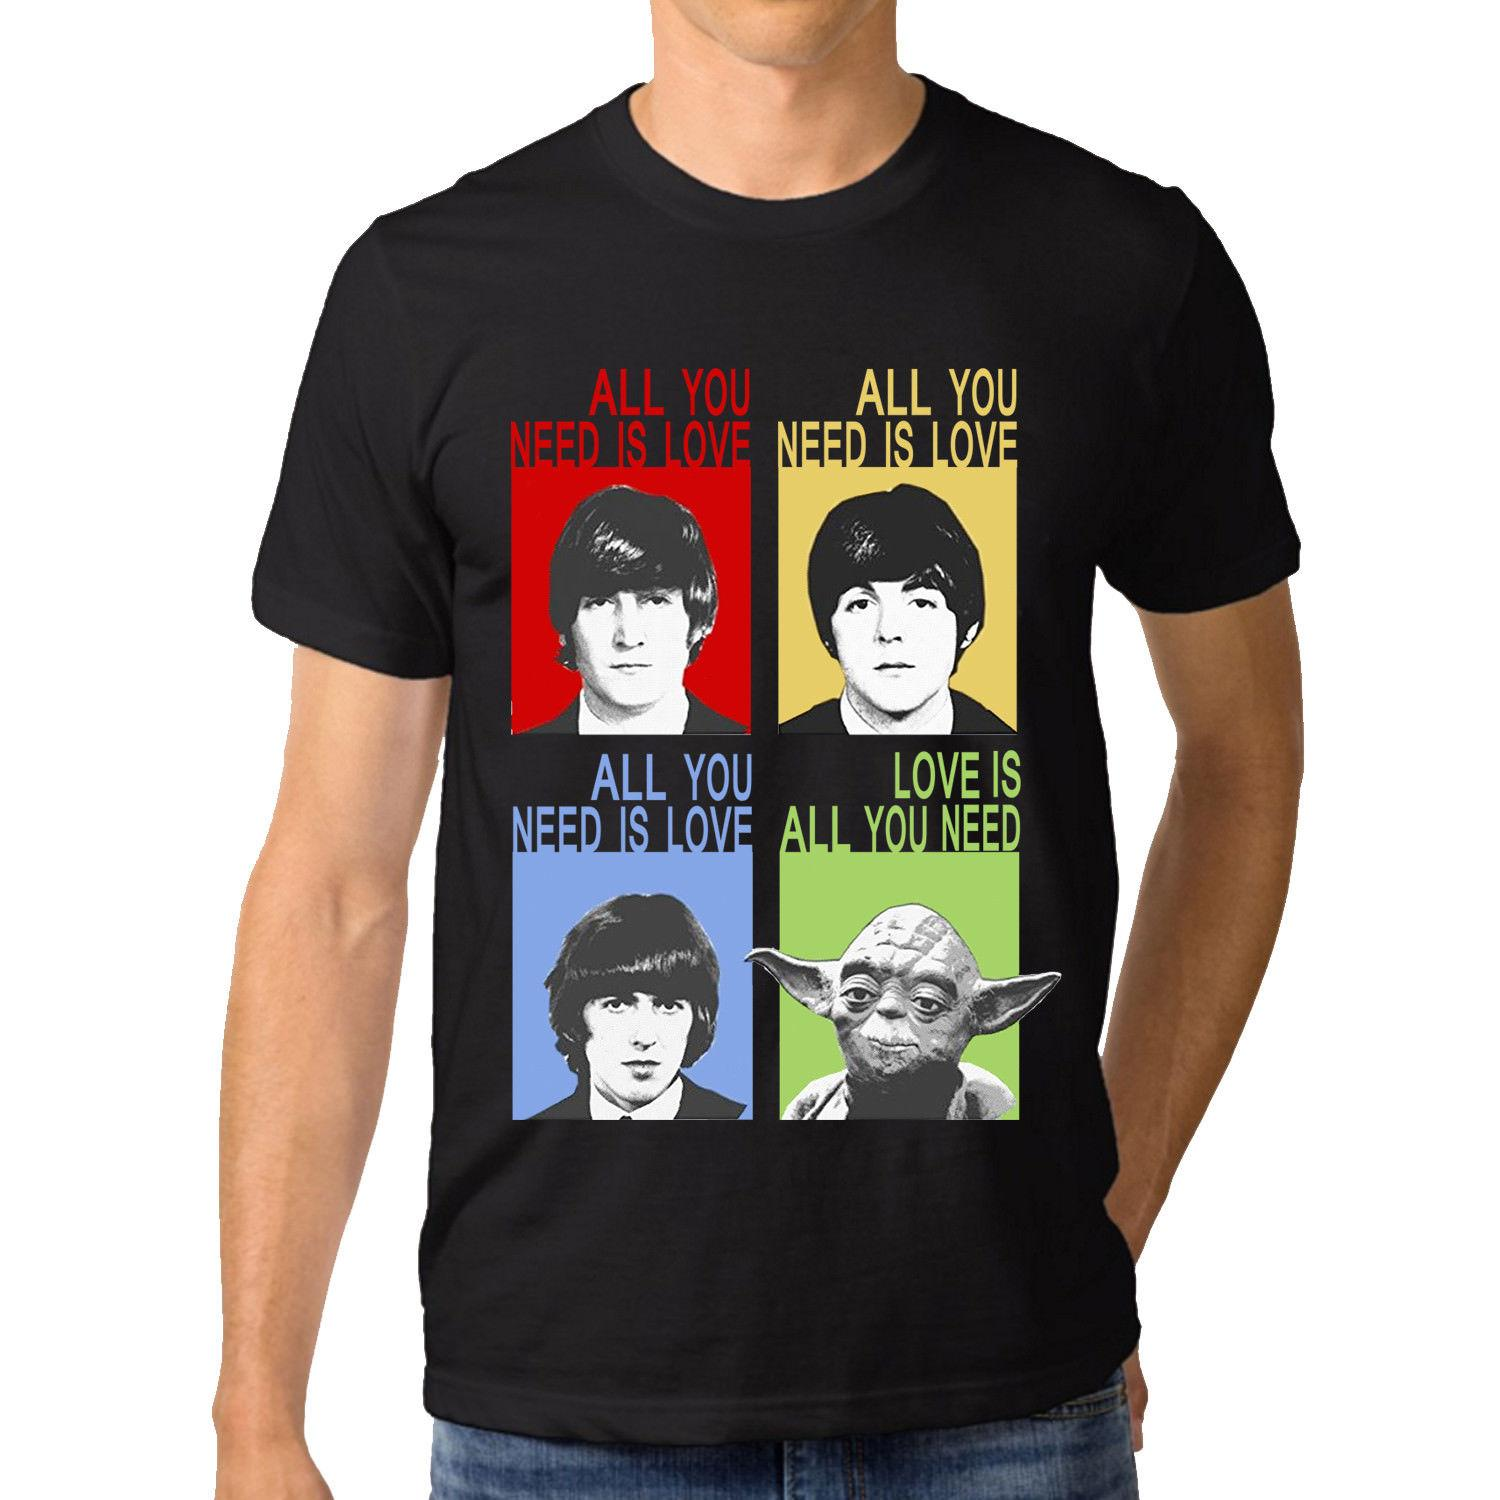 118ed3a9a Funny All You Need Is Love The Beatles Combo Customer 100 Cotton T Shirt  For Men Cool Casual Pride T Shirt Men Unisex T Shirts For T Shirt For From  ...